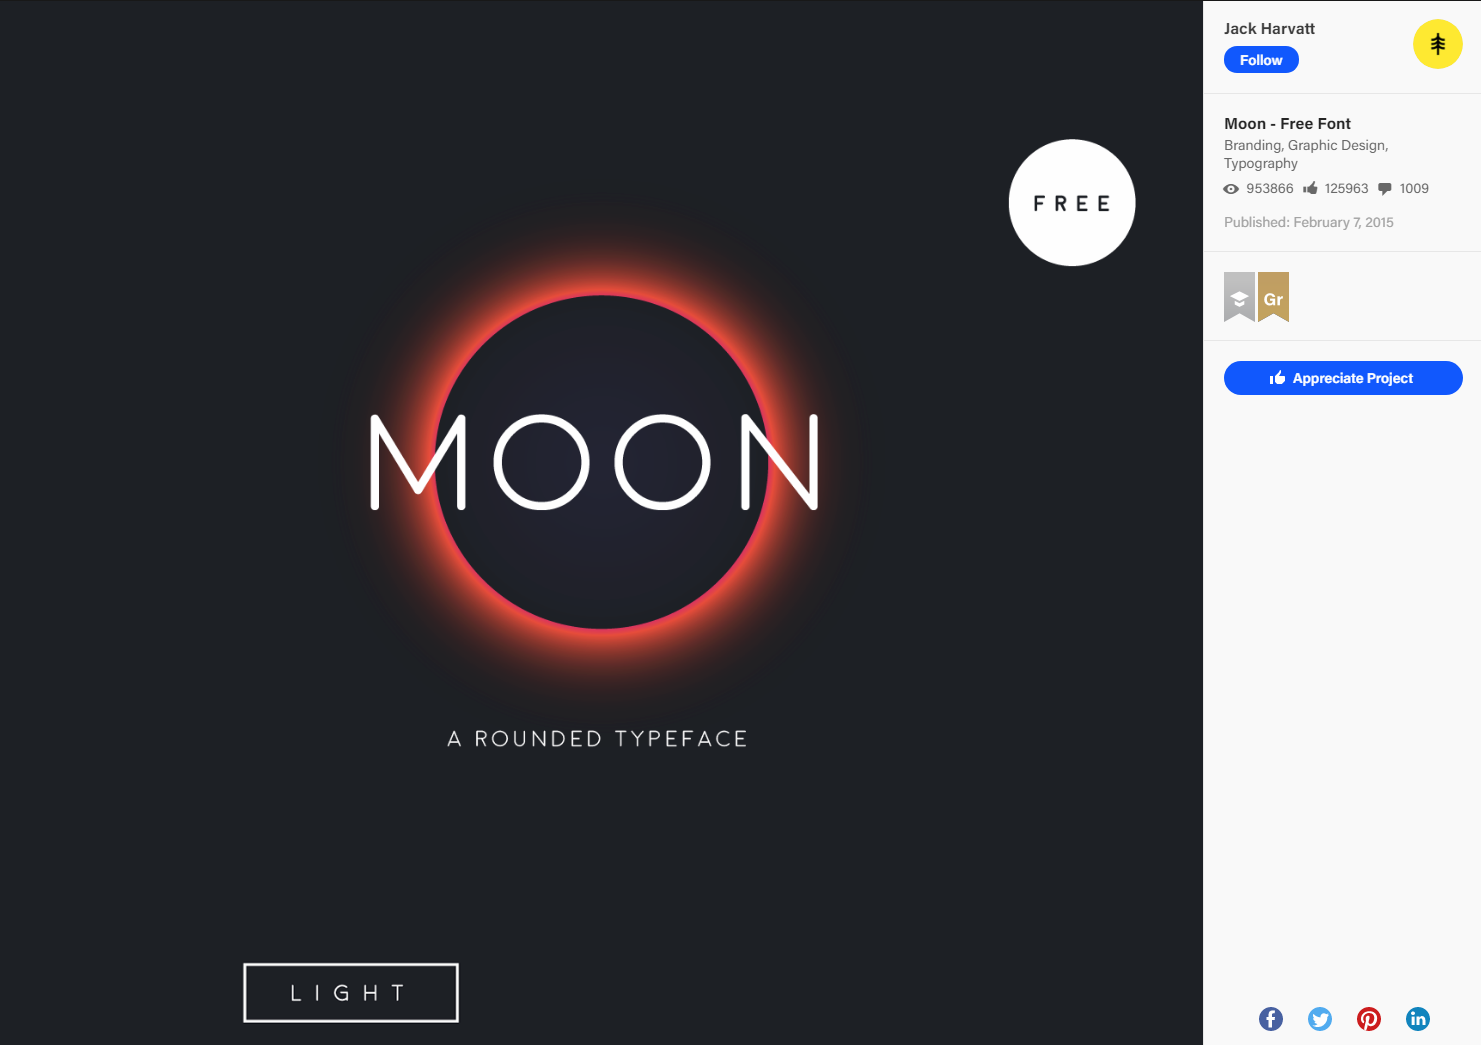 Moon - Free Font on Behance